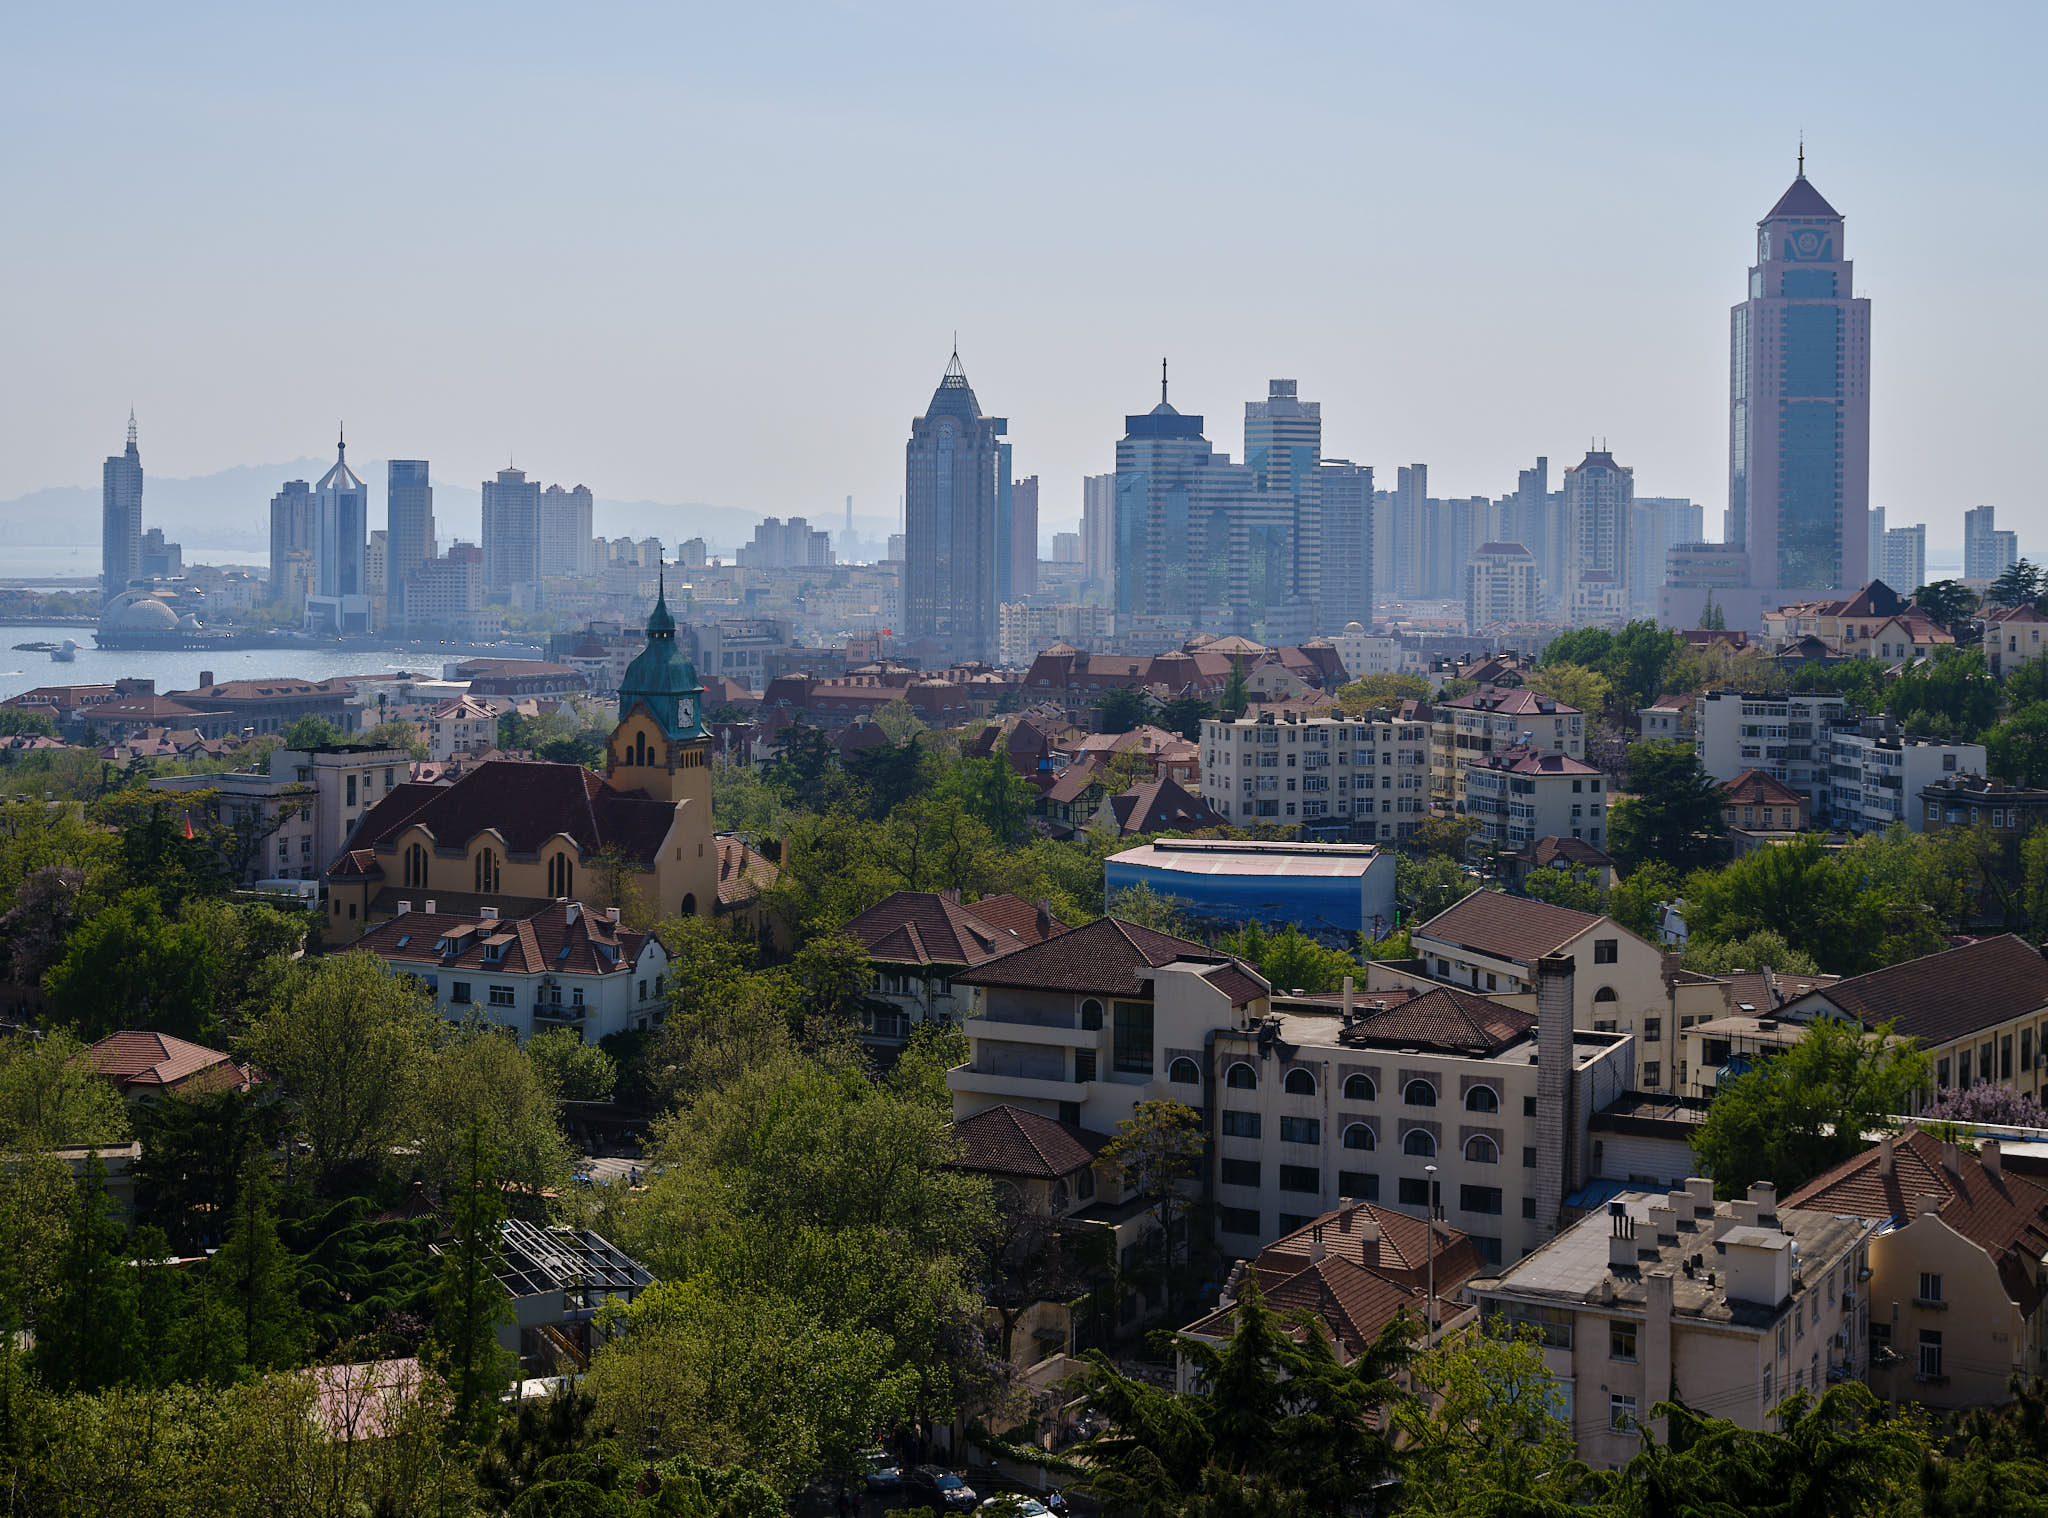 View of Christ Church in Qingdao from Signal Hill